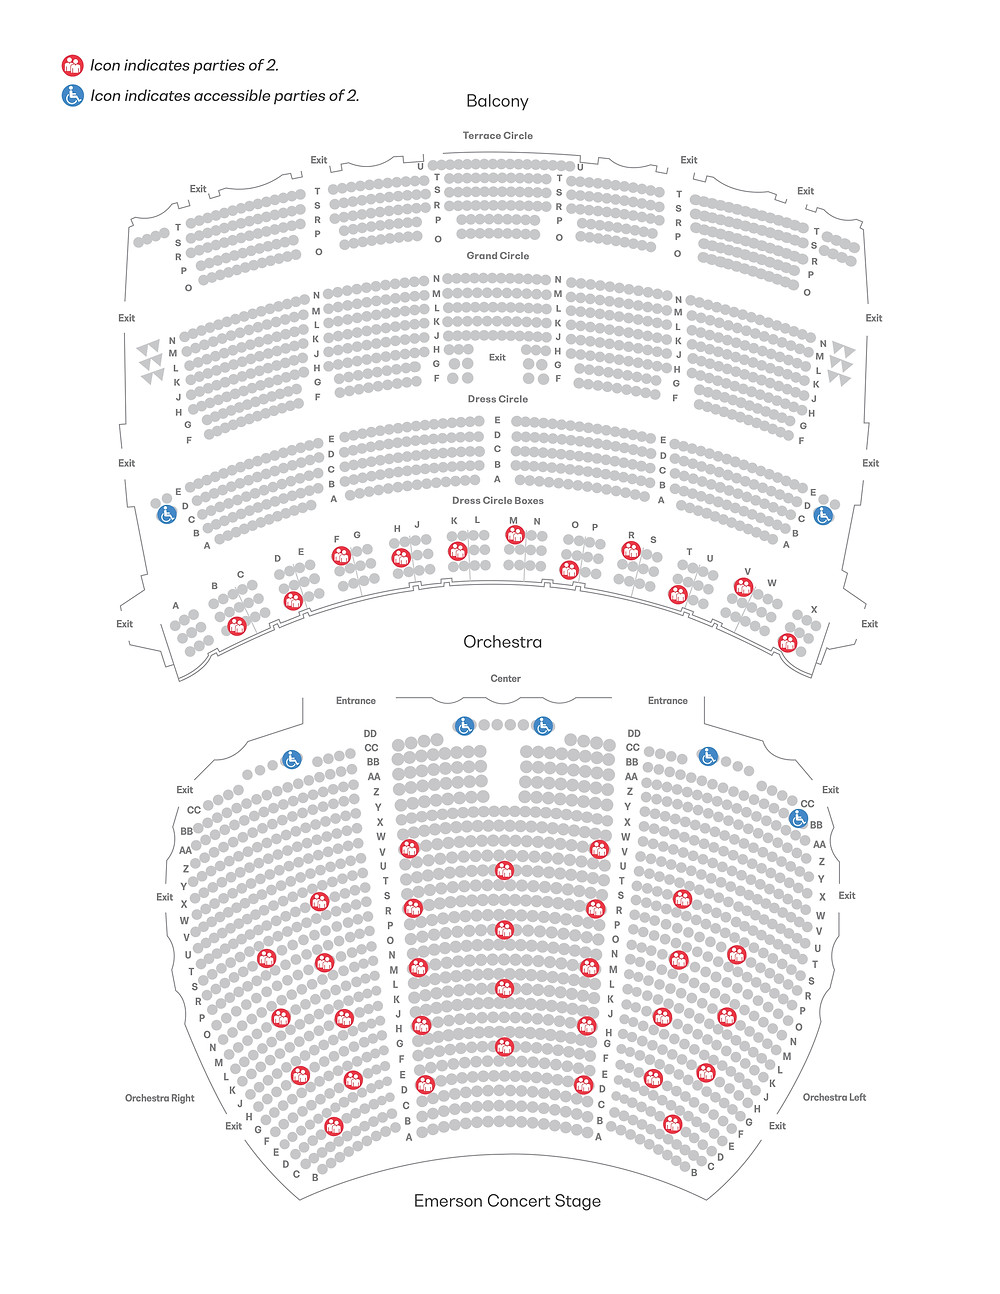 The SLSO's socially distanced seat map